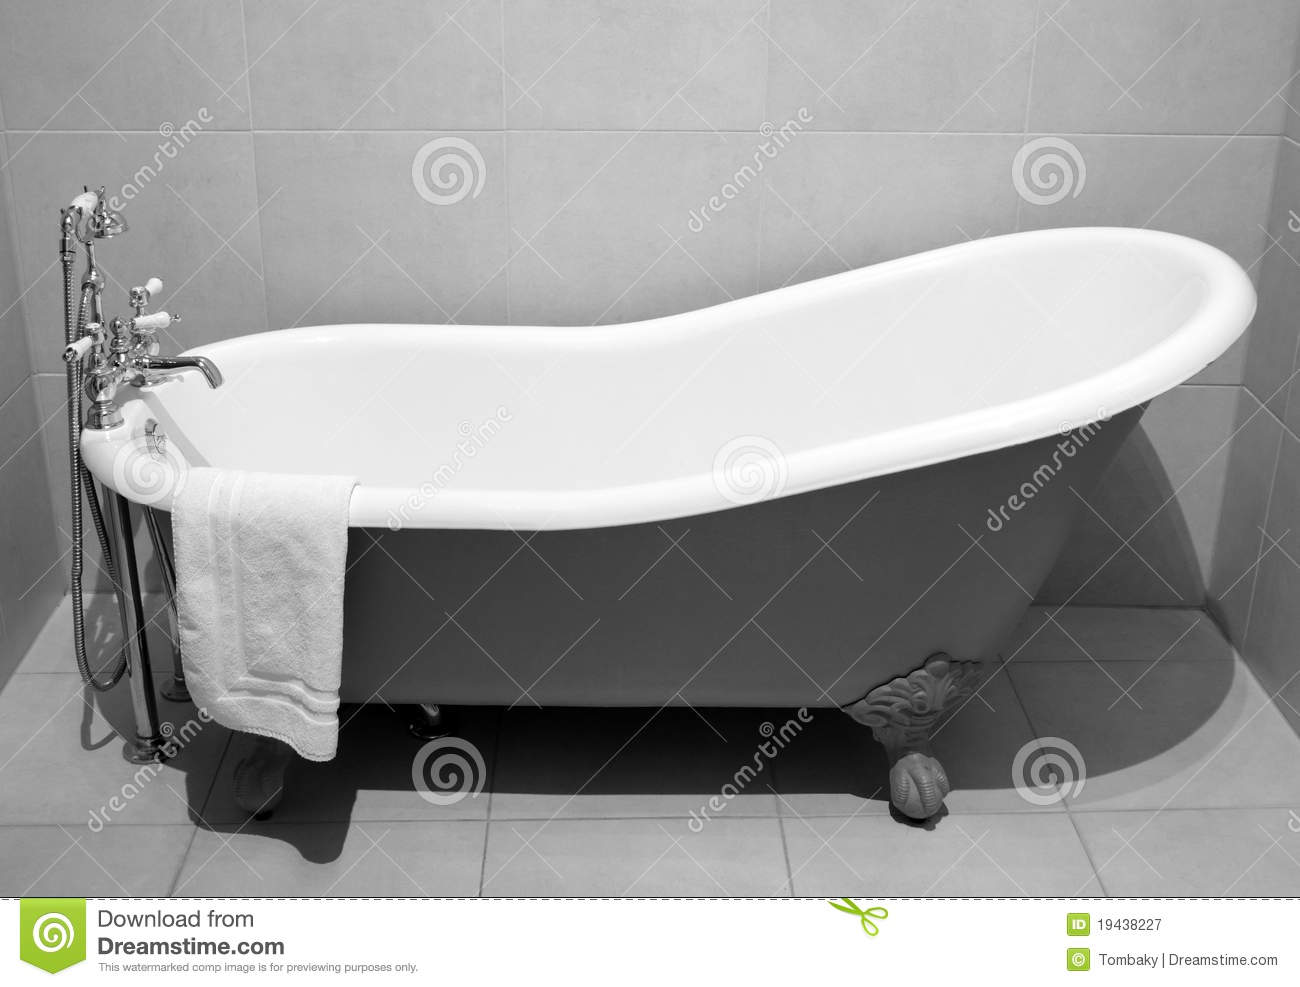 Cancel De Baño Con Tina:Metal Bath Tubs with Legs